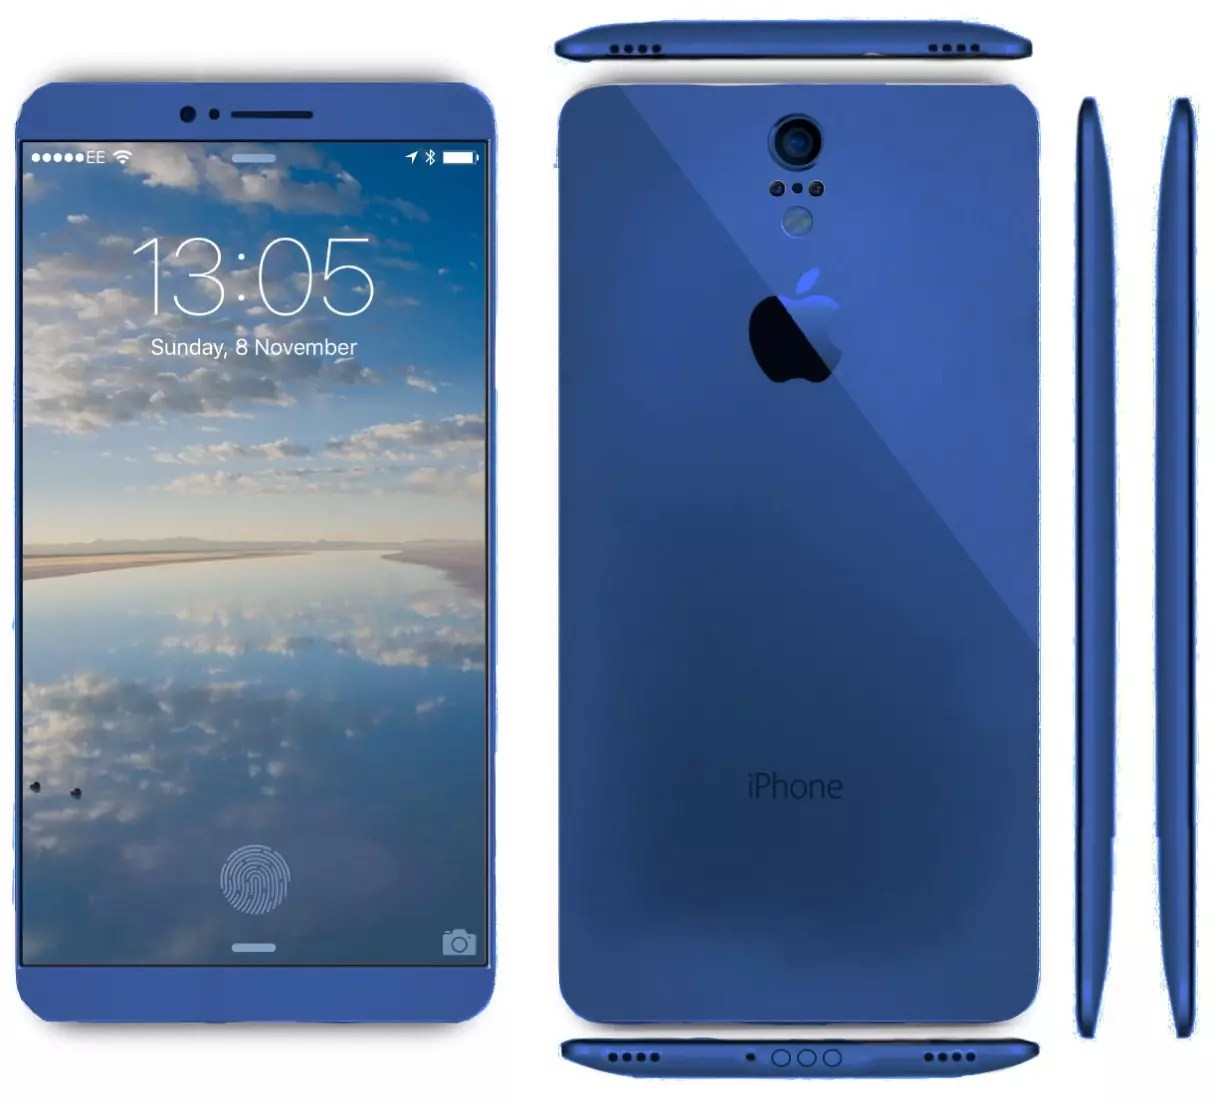 iPhone 7 blue